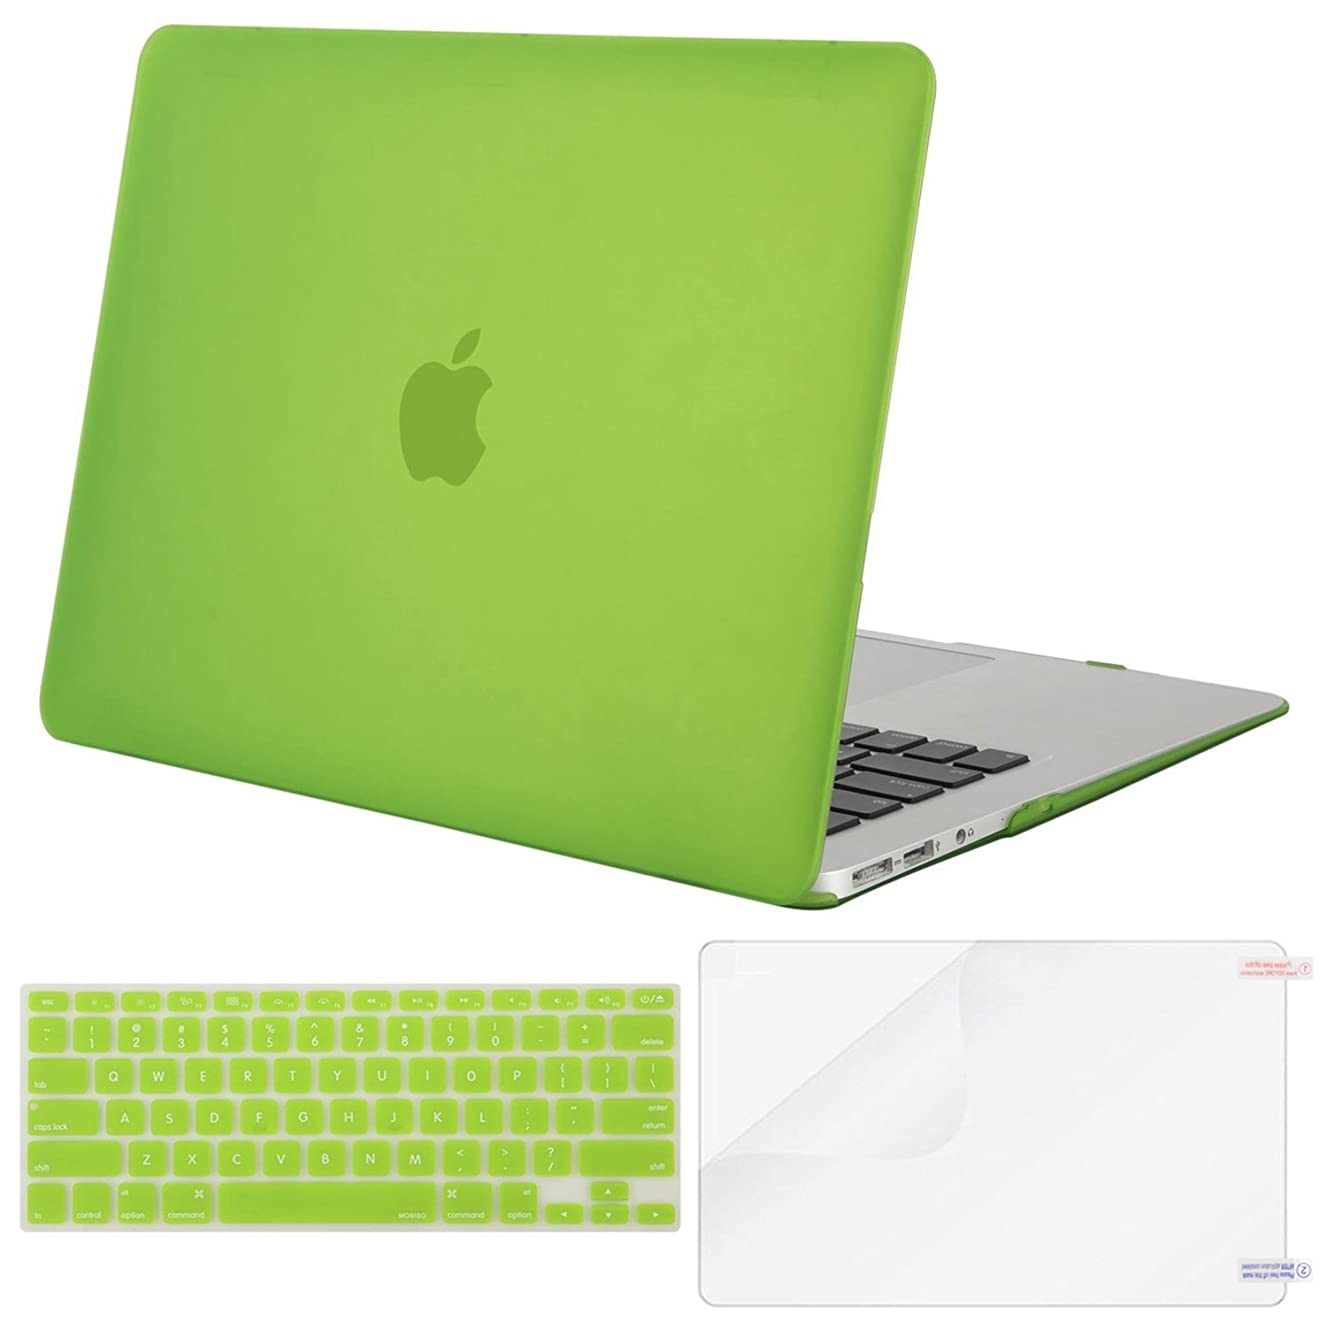 MOSISO Plastic Hard Case & Keyboard Cover & Screen Protector Only Compatible MacBook Air 13 Inch (Models: A1369 & A1466, Older Version 2010-2017 Release),Translucent Greenery